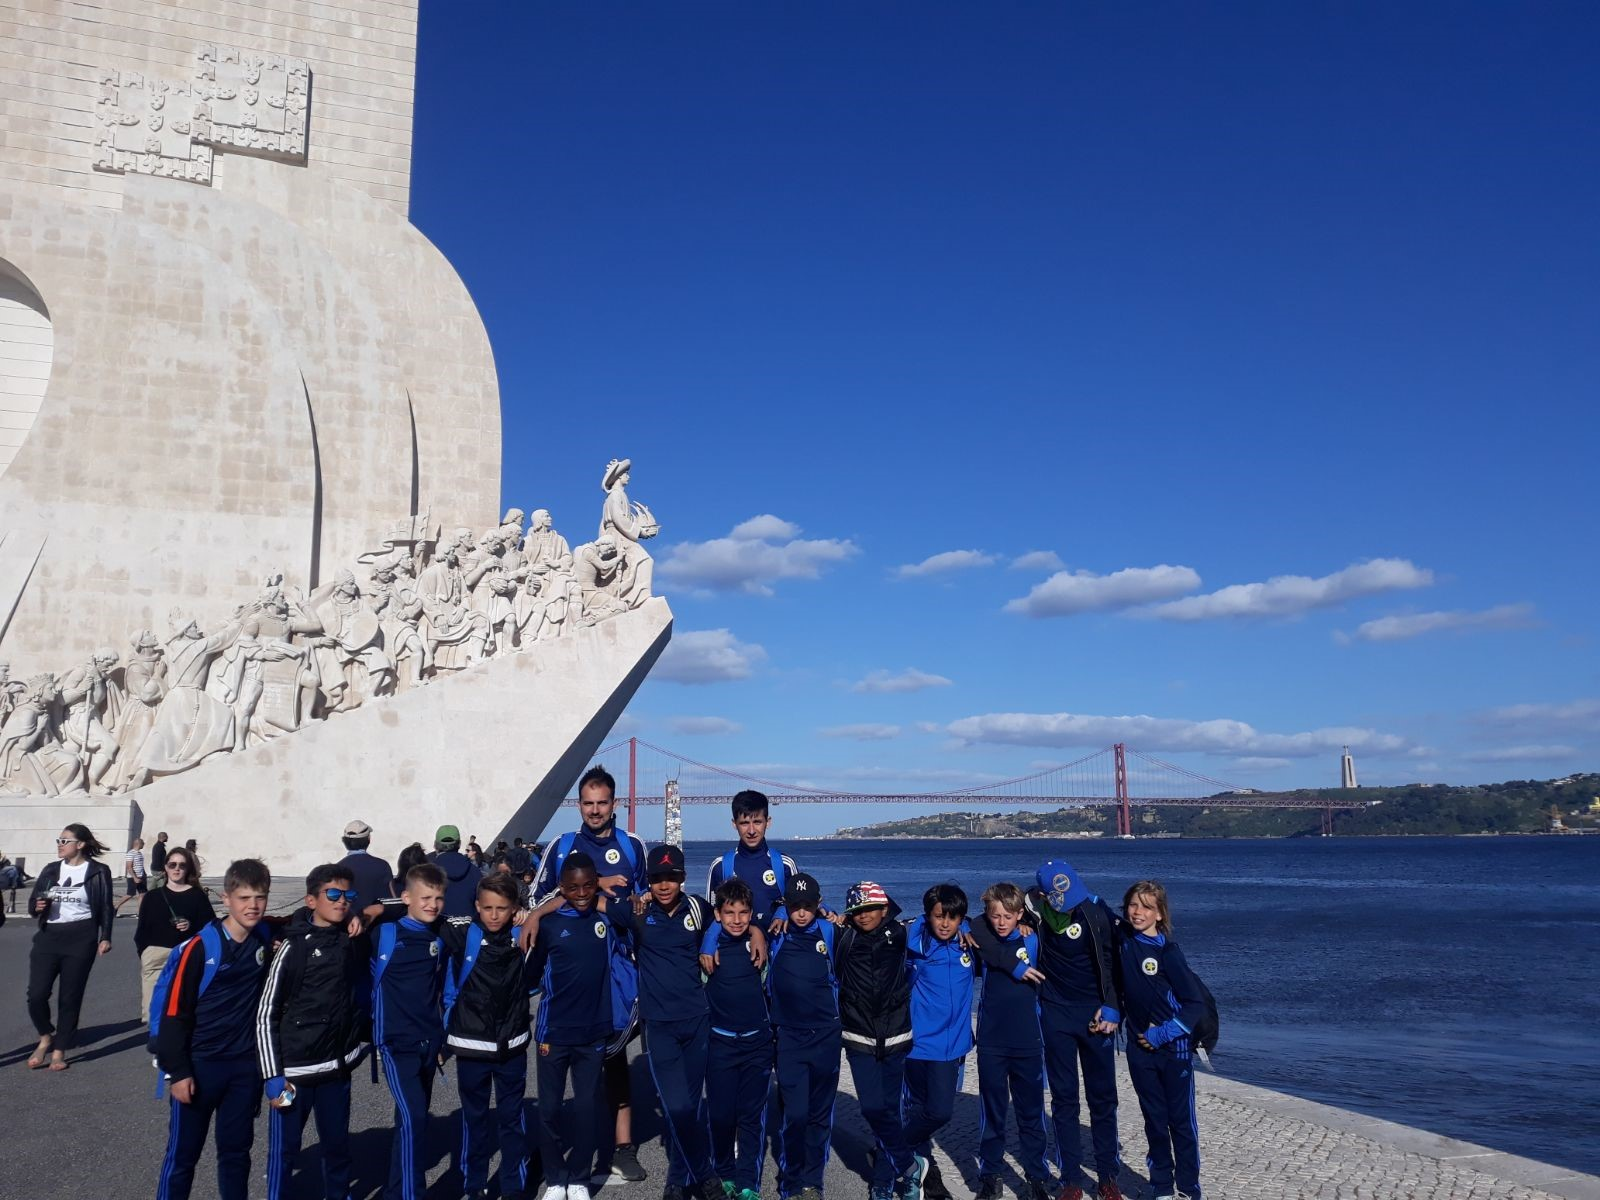 Football-tour-event-portugal-spain-italy-sports-ventures-2